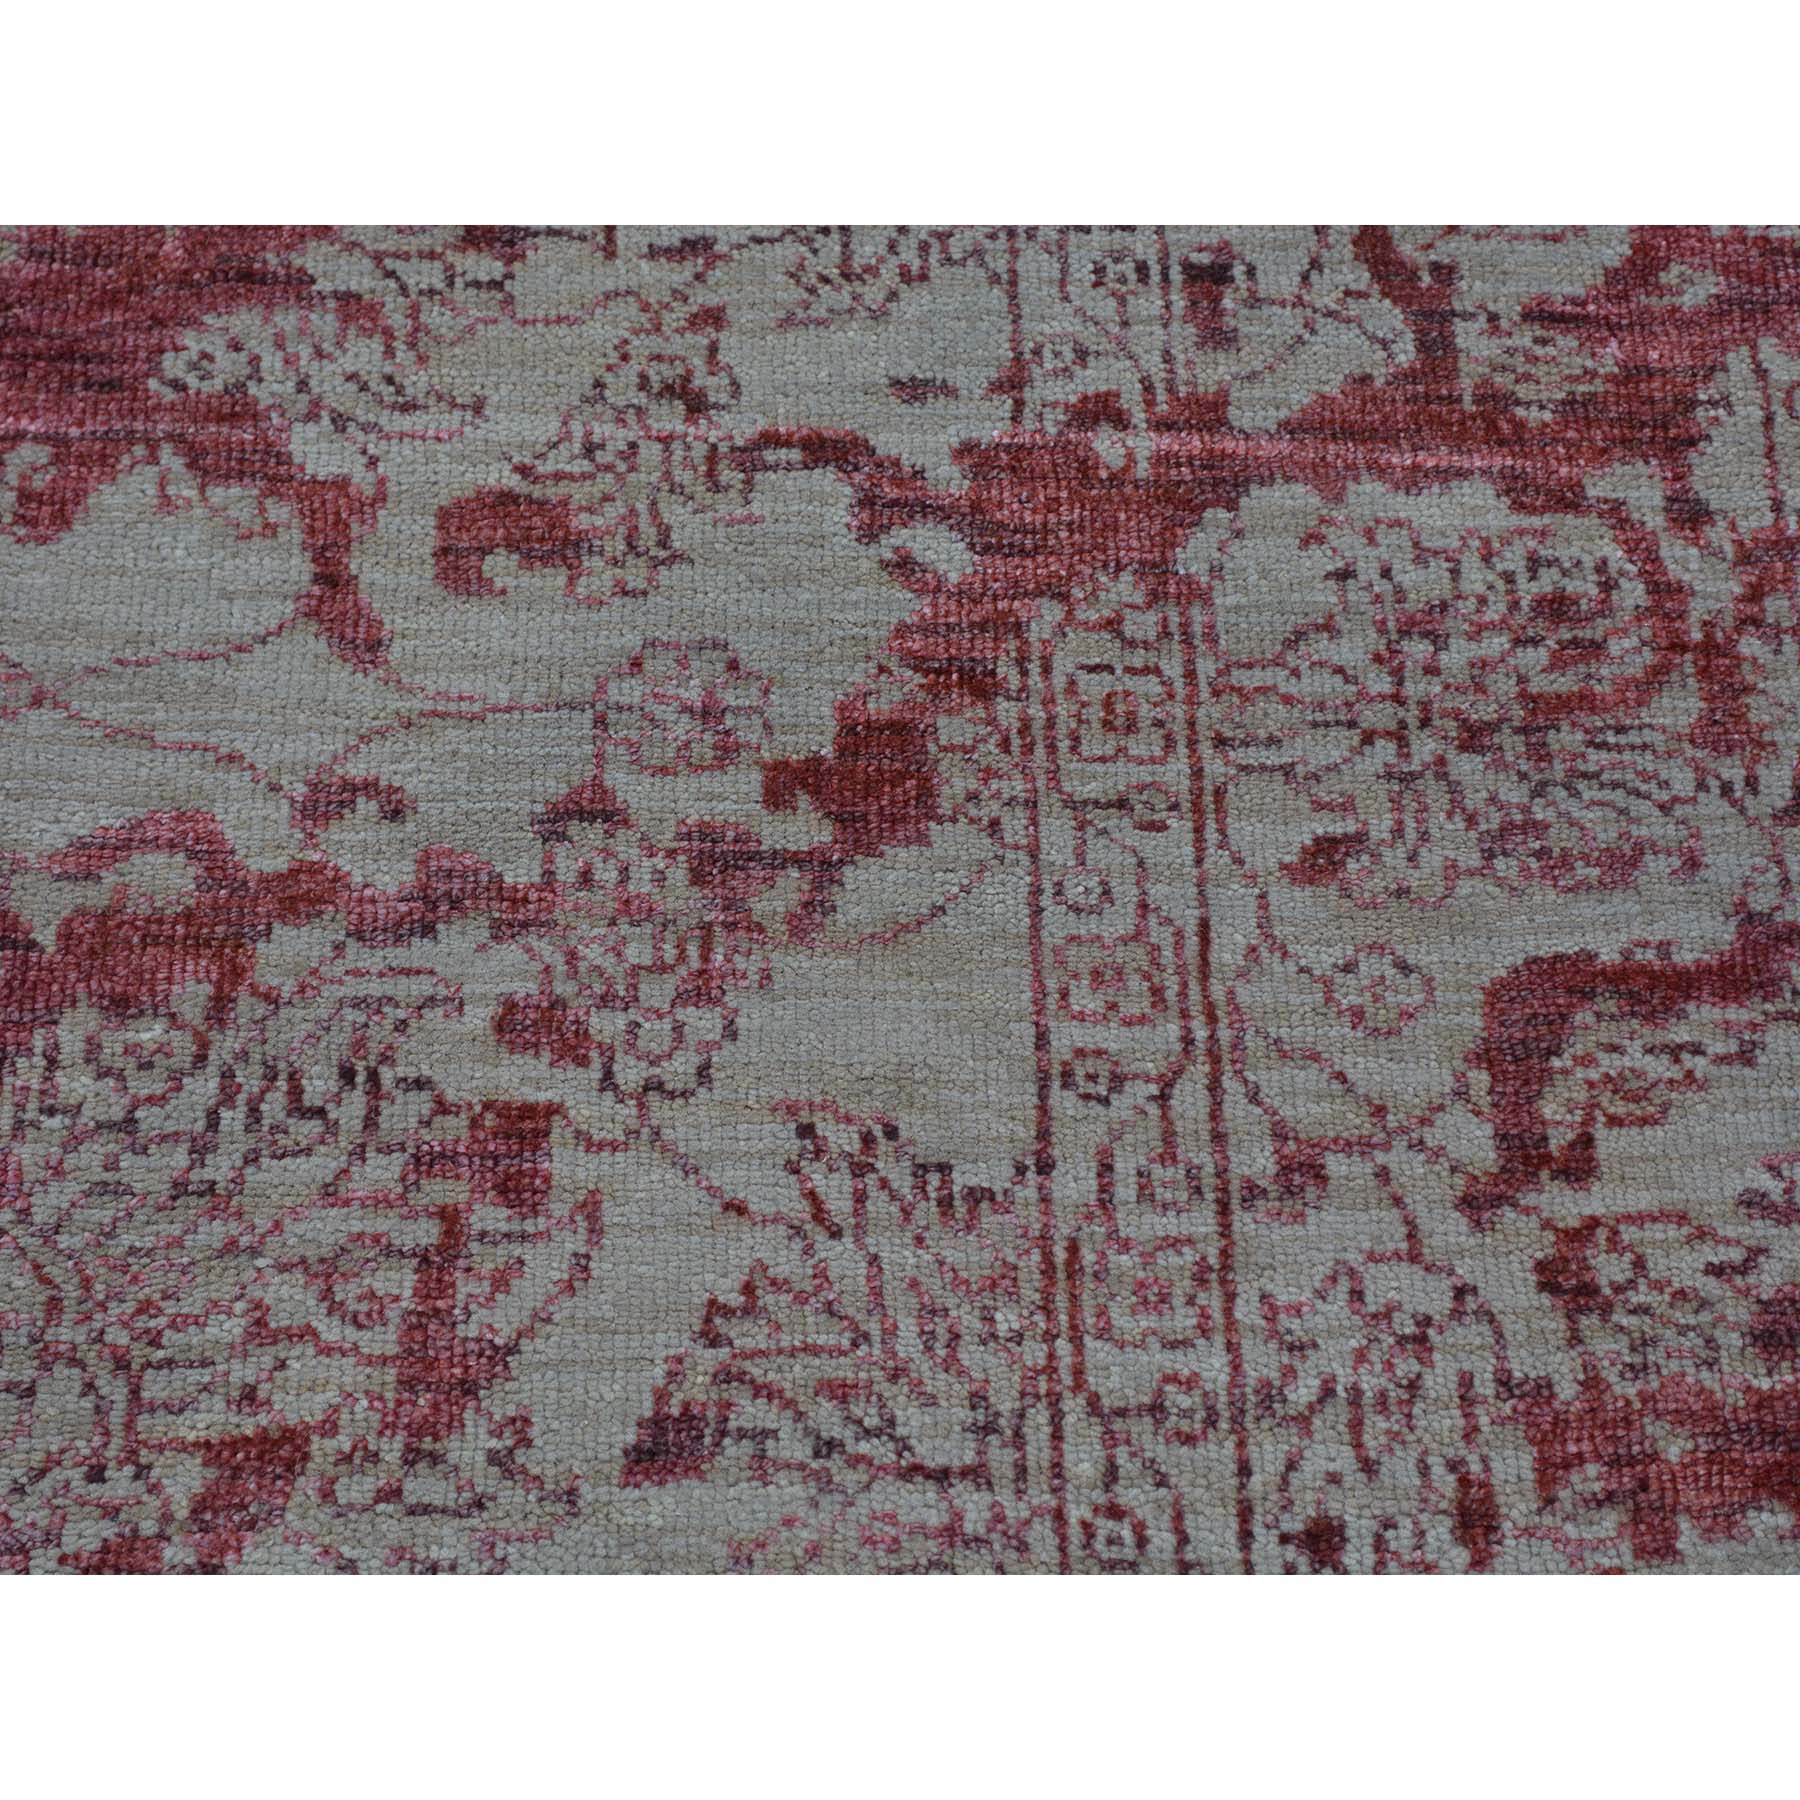 2- x 3- Hand Knotted Wool and Silk Broken Design Heriz Sample Oriental Rug